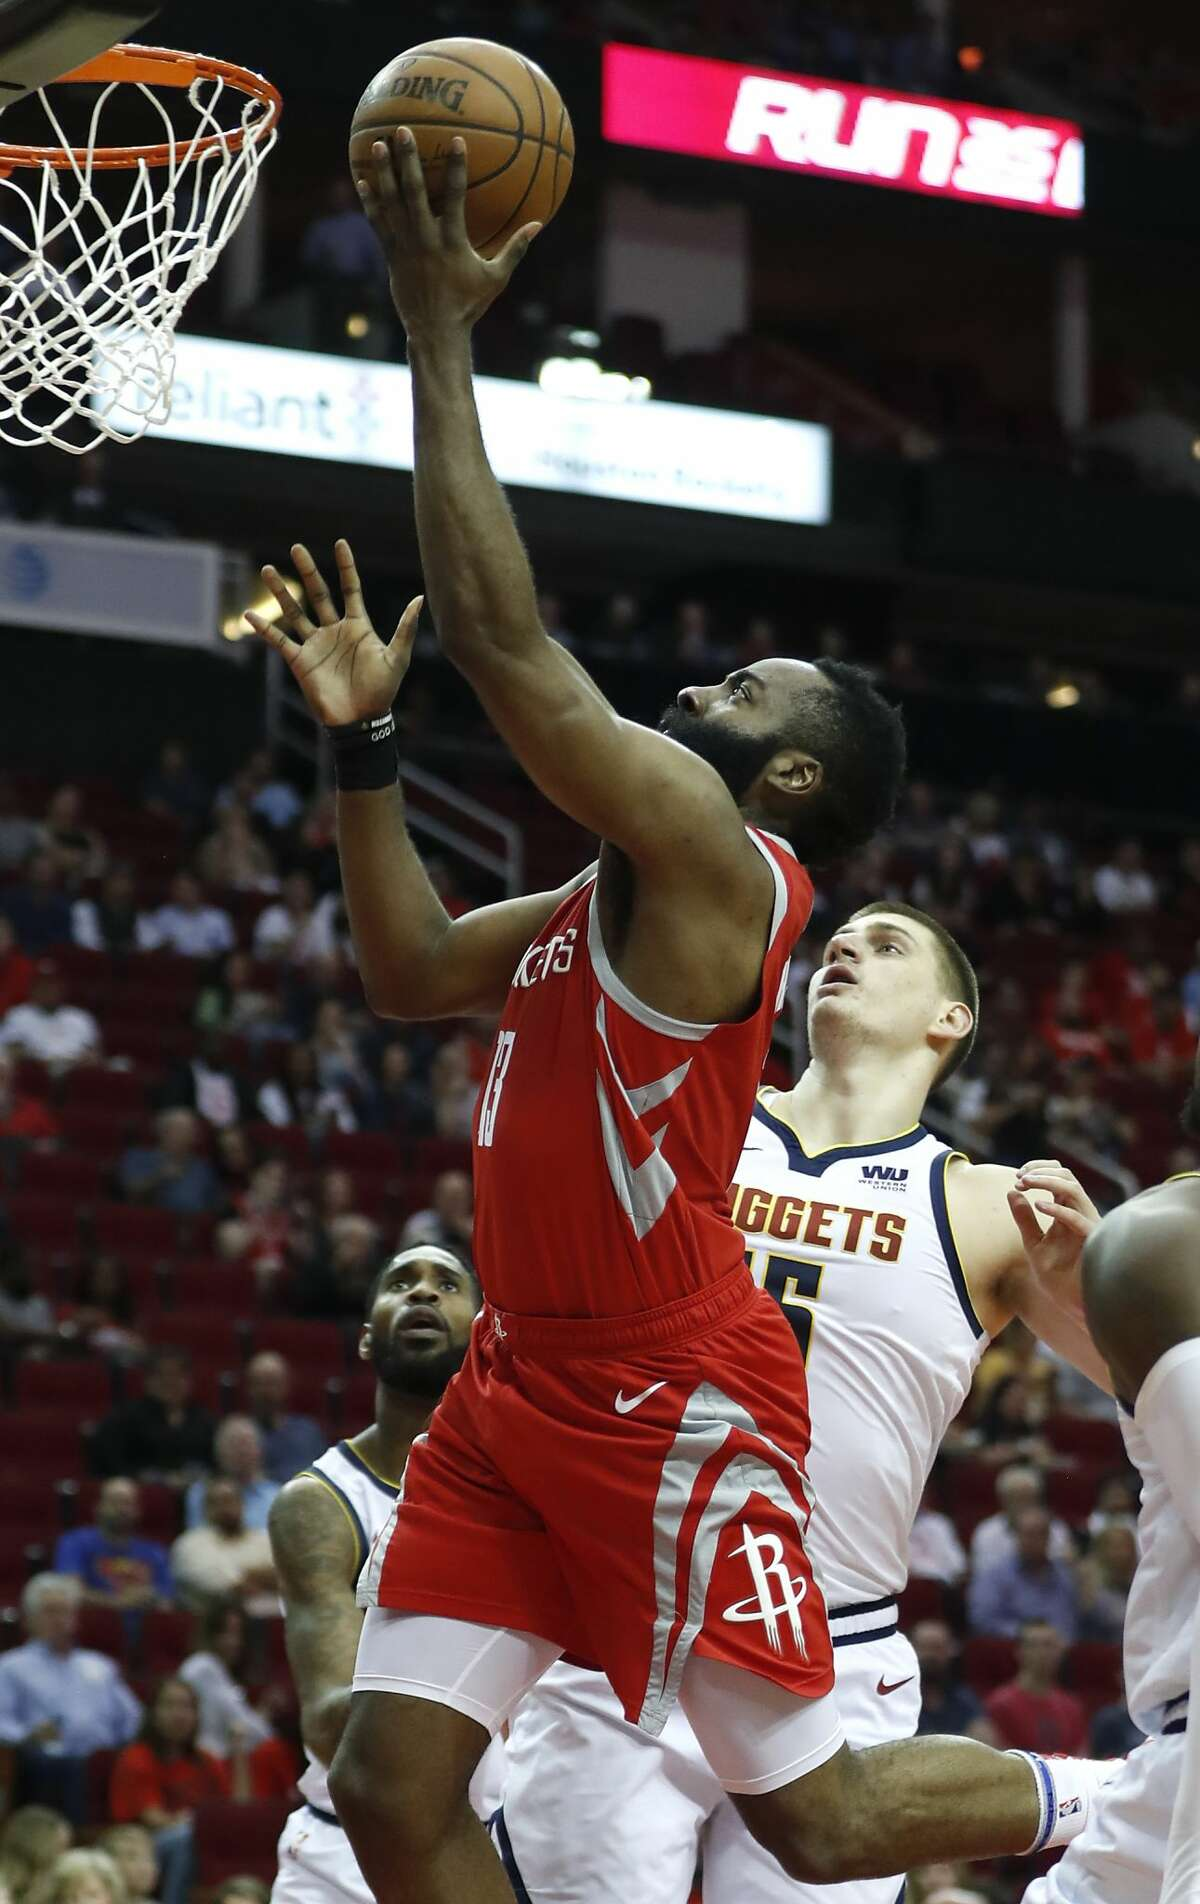 Houston Rockets guard James Harden (13) drives in for a layup past Denver Nuggets center Nikola Jokic (15) during the first half of an NBA basketball game at Toyota Center on Thursday, March 28, 2019, in Houston.